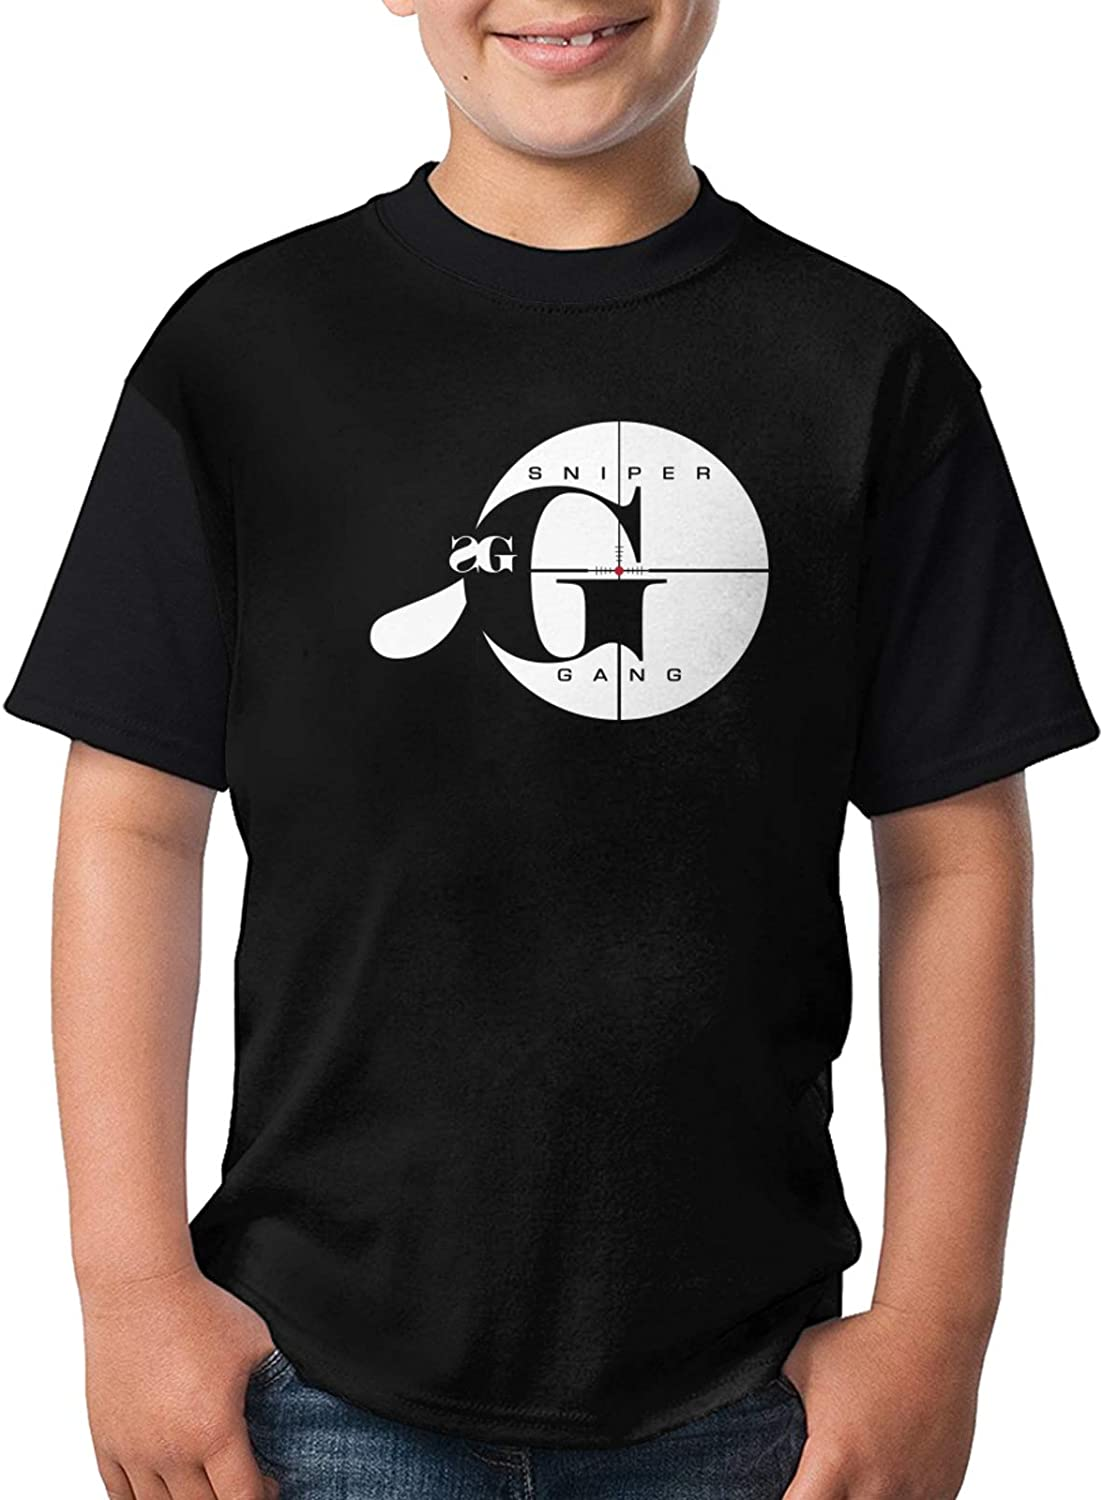 Castle Earl Sniper Gifts Gang Mail order Cute Teenagers Sho Fashion T Girl Shirts